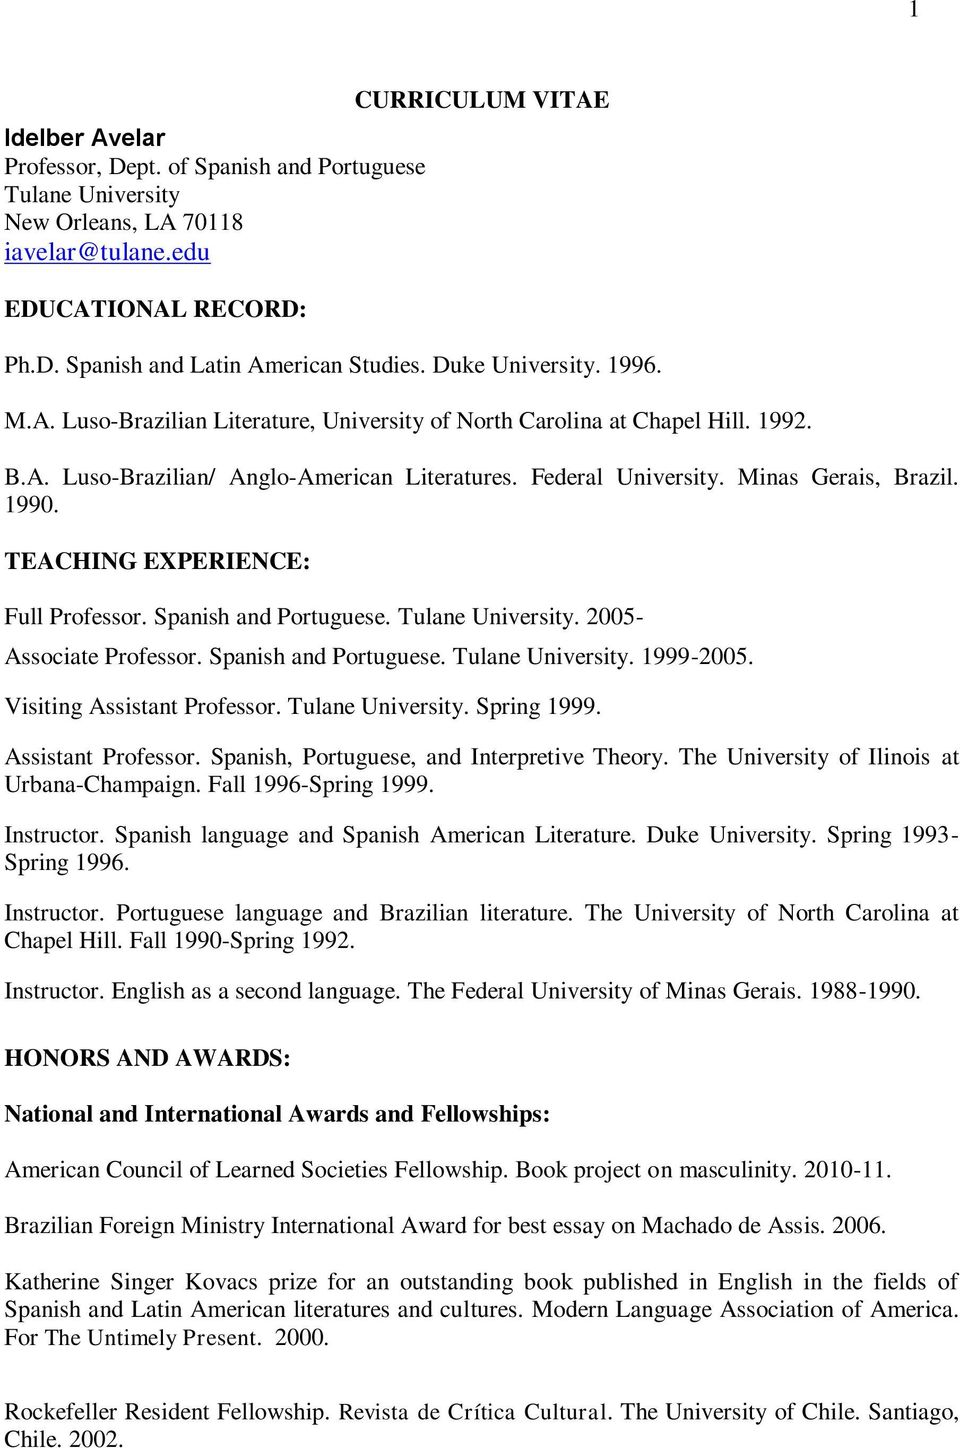 1990. TEACHING EXPERIENCE: Full Professor. Spanish and Portuguese. Tulane University. 2005- Associate Professor. Spanish and Portuguese. Tulane University. 1999-2005. Visiting Assistant Professor.